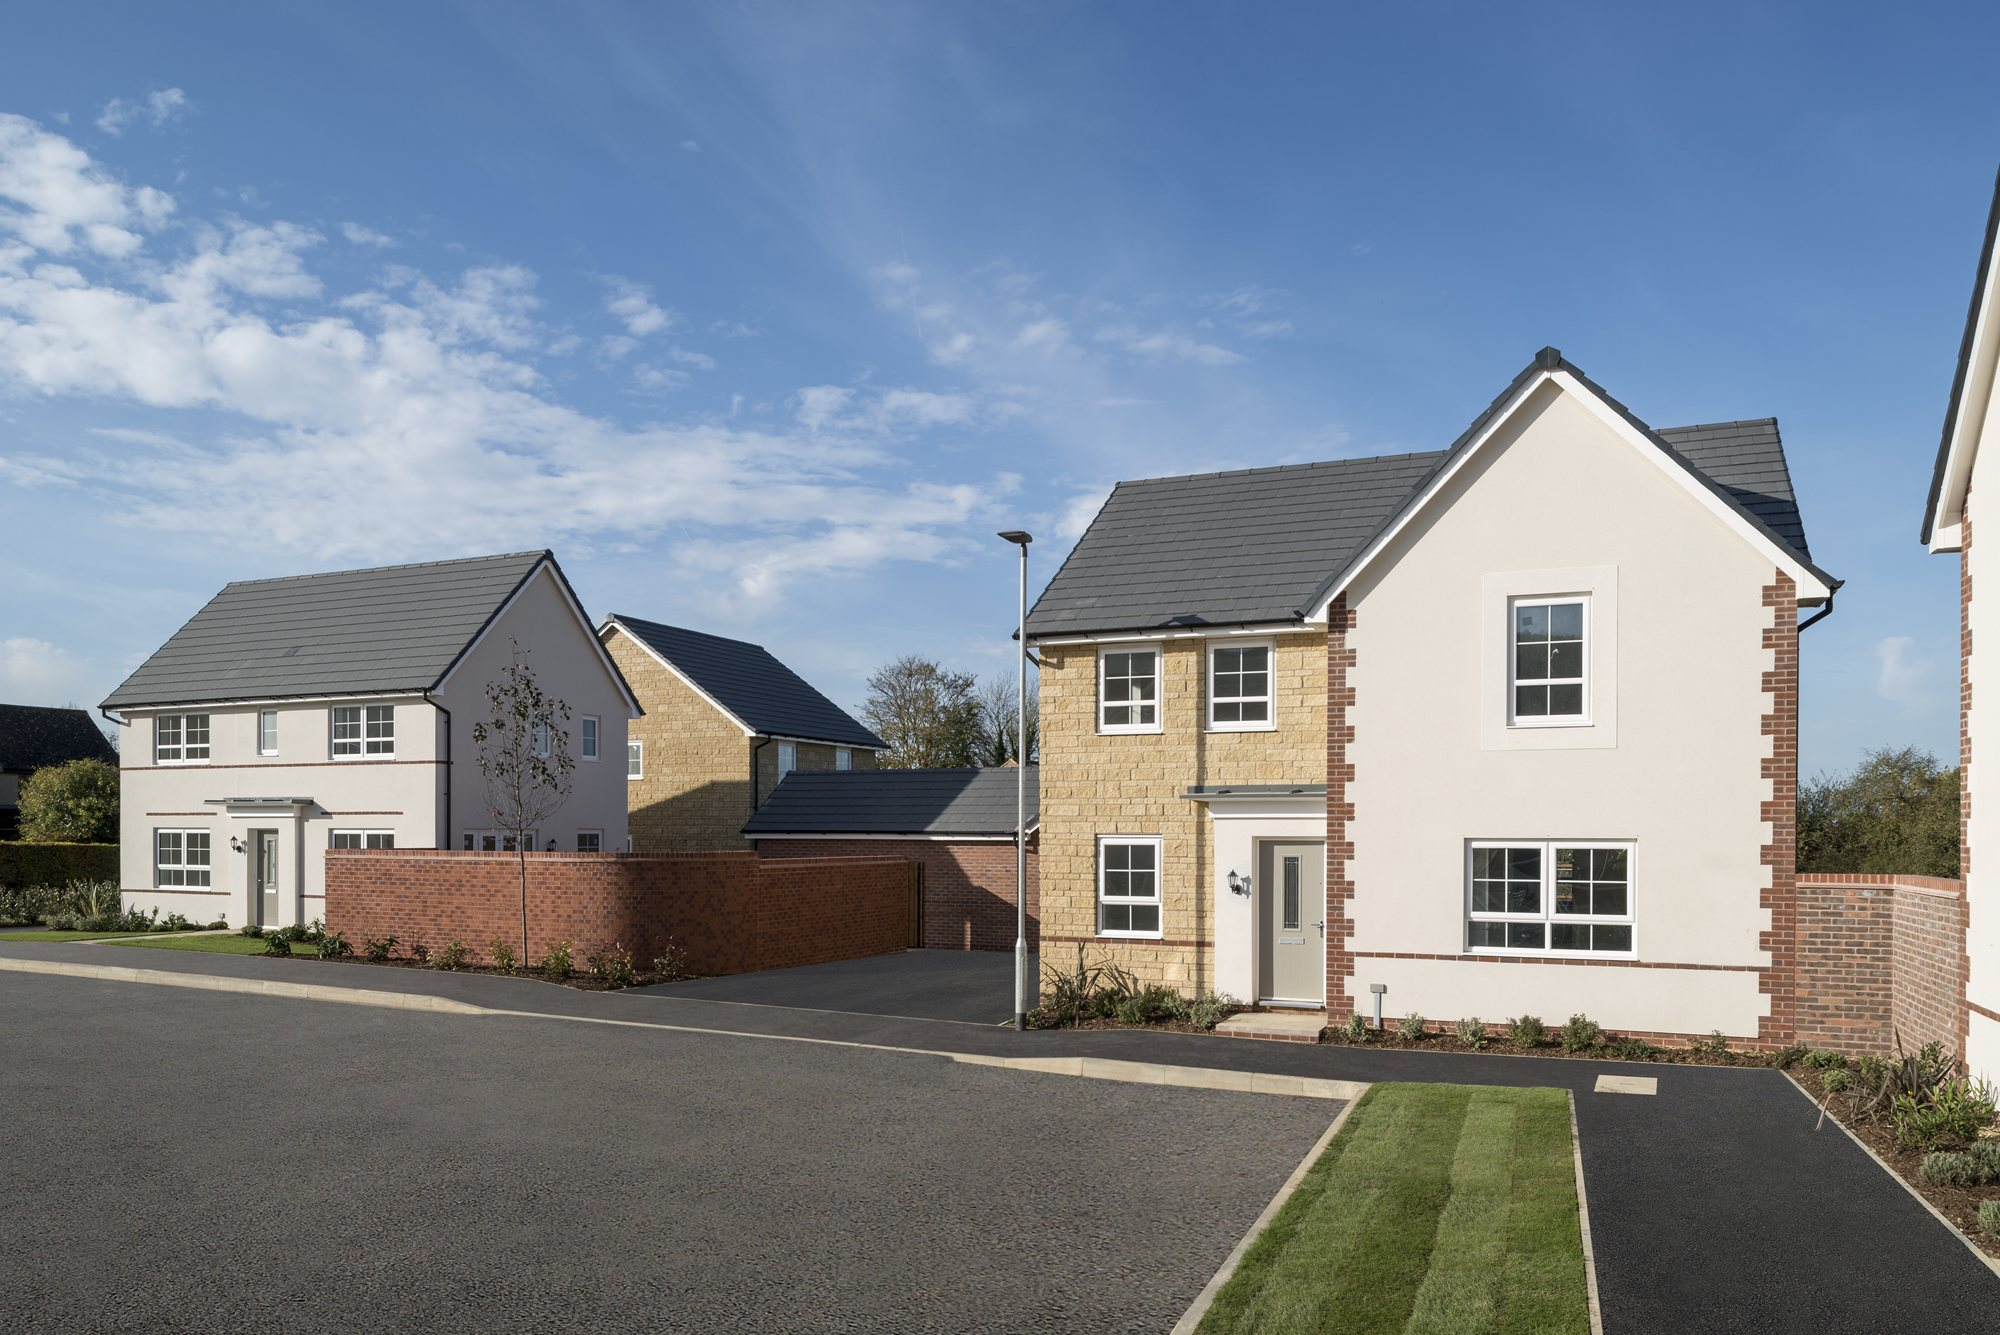 new homes for sale in leonard stanley at saxon gate barratt homes rh barratthomes co uk